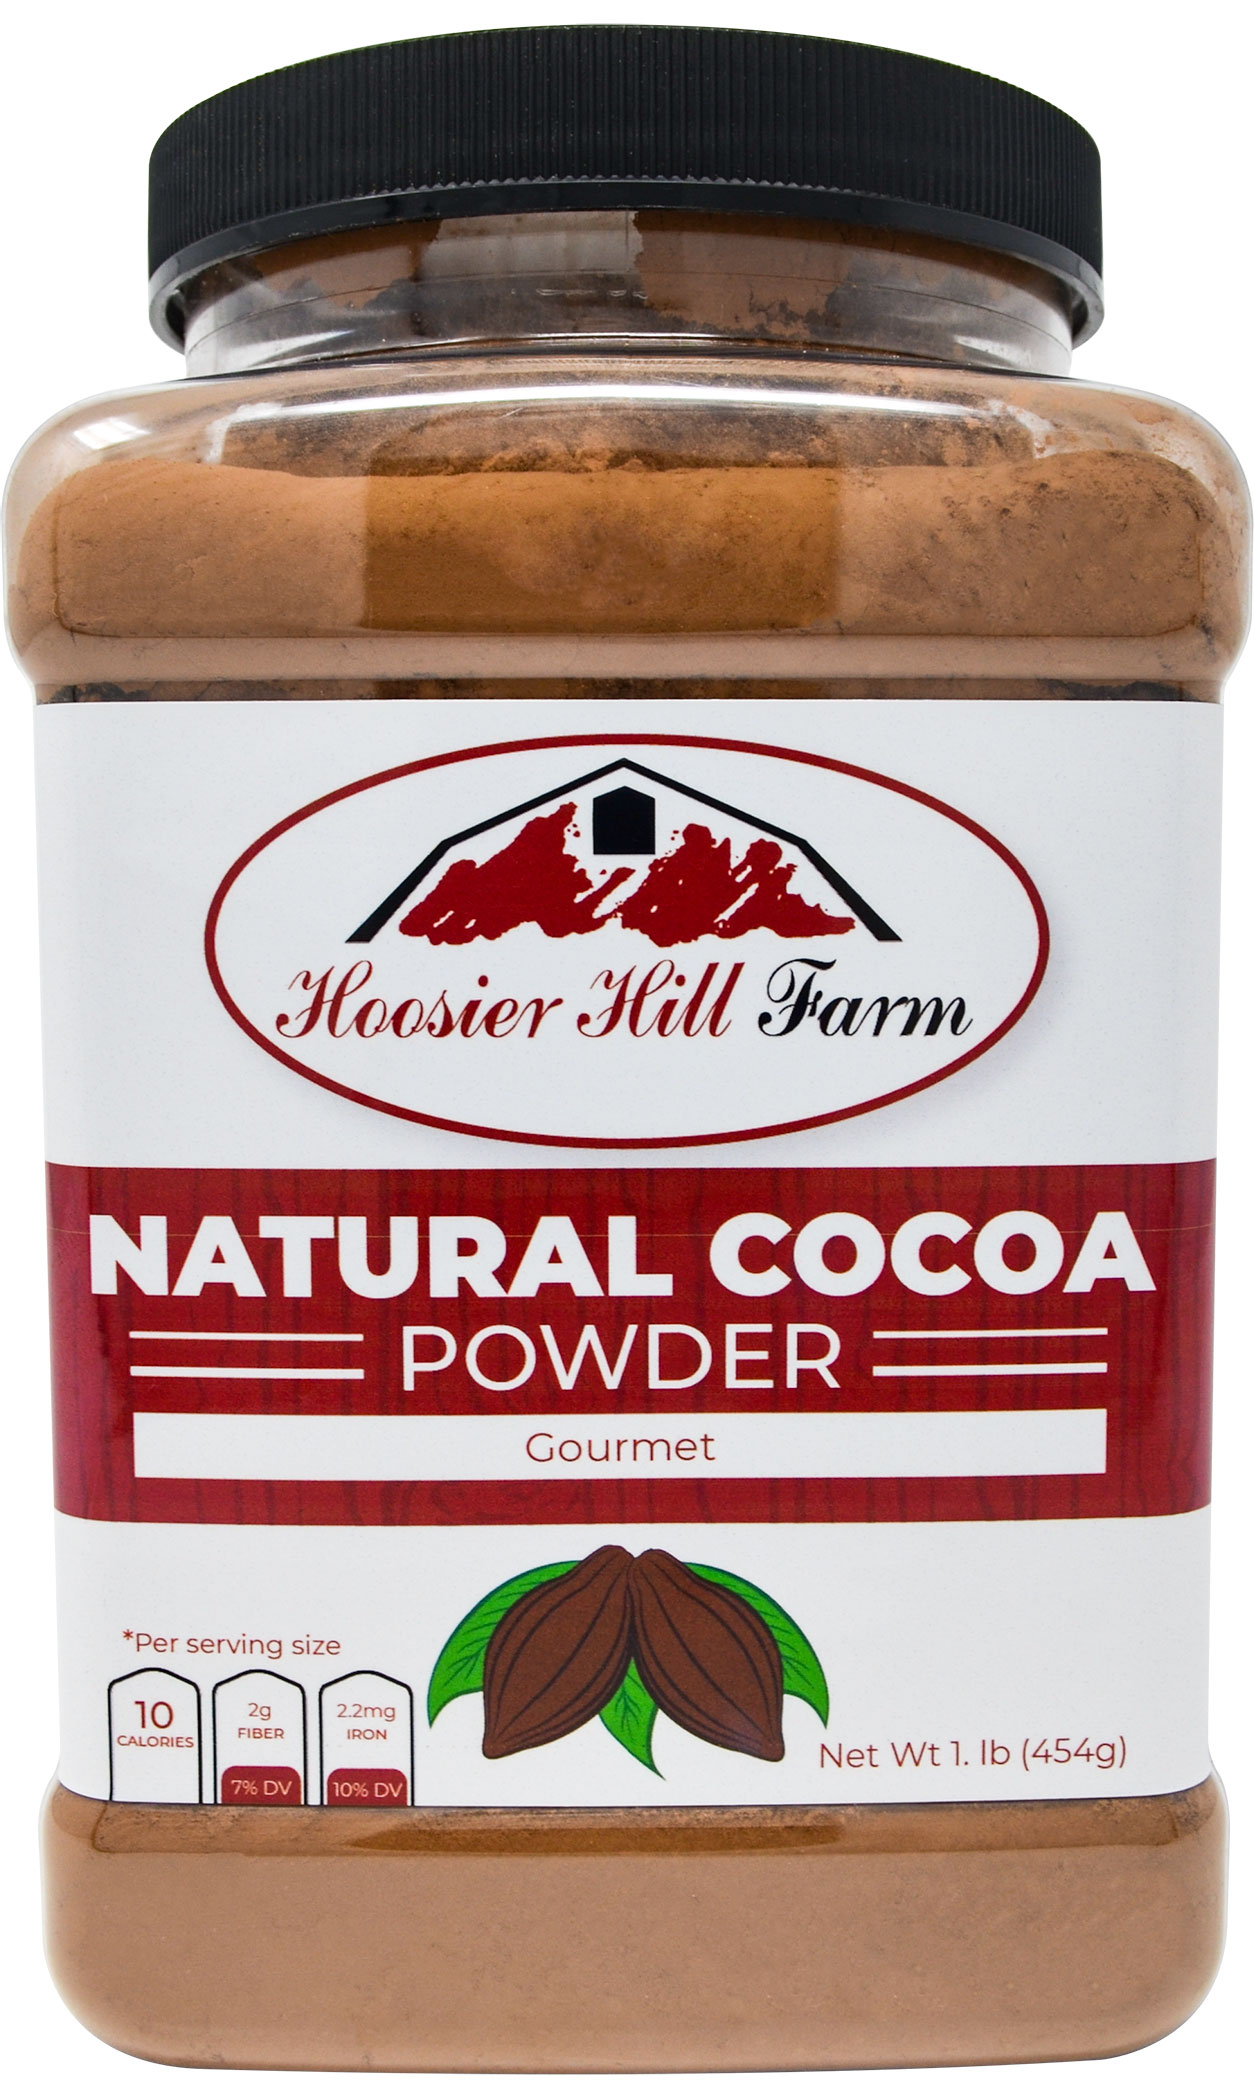 Hoosier Hill Farm Natural Cocoa Powder, 1 lb